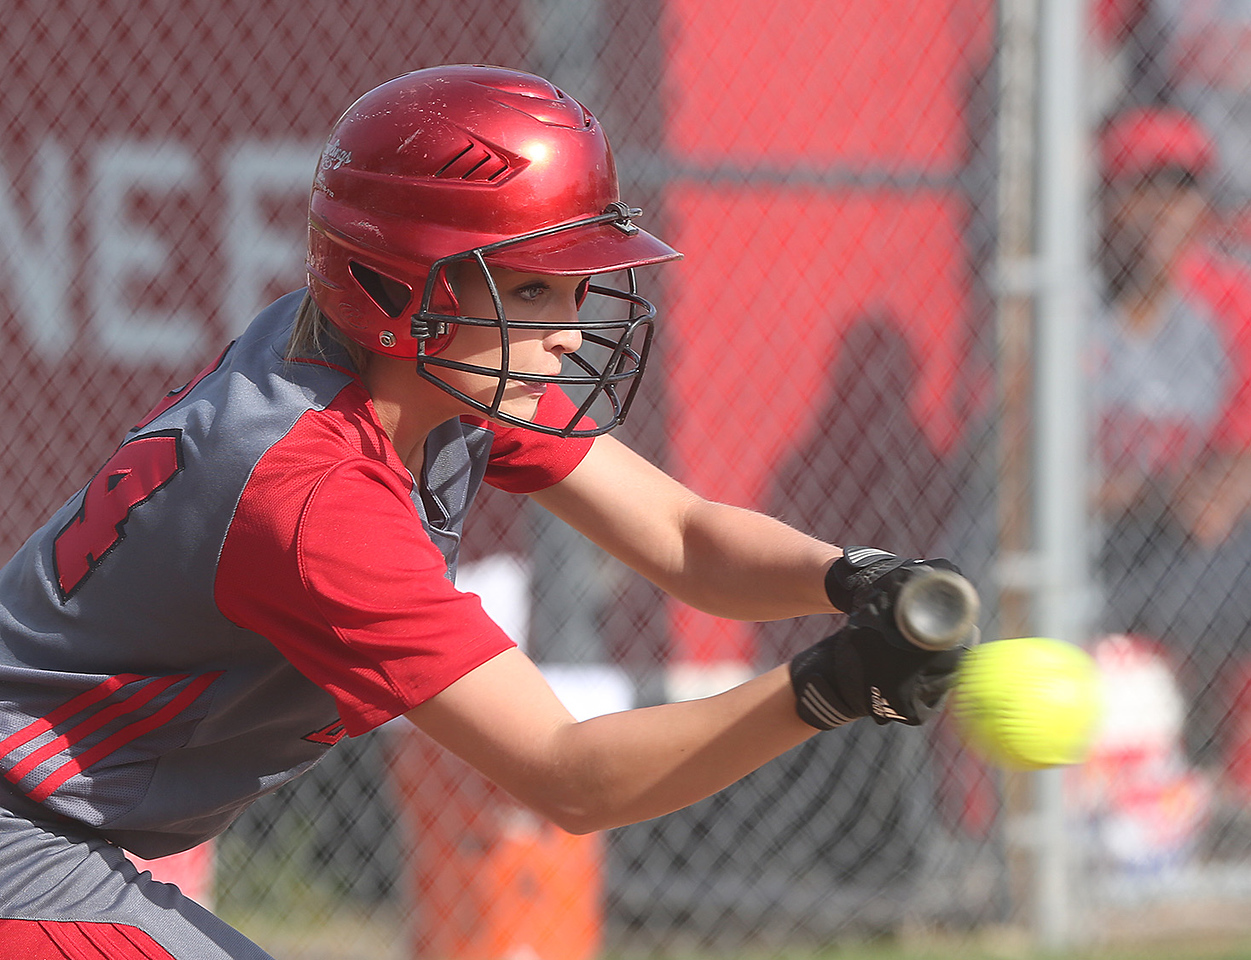 Elyria High's #24 Anna Daly puts down a sacrifice bunt to move the runner to second during the game at Elyria's field against Brunswick.